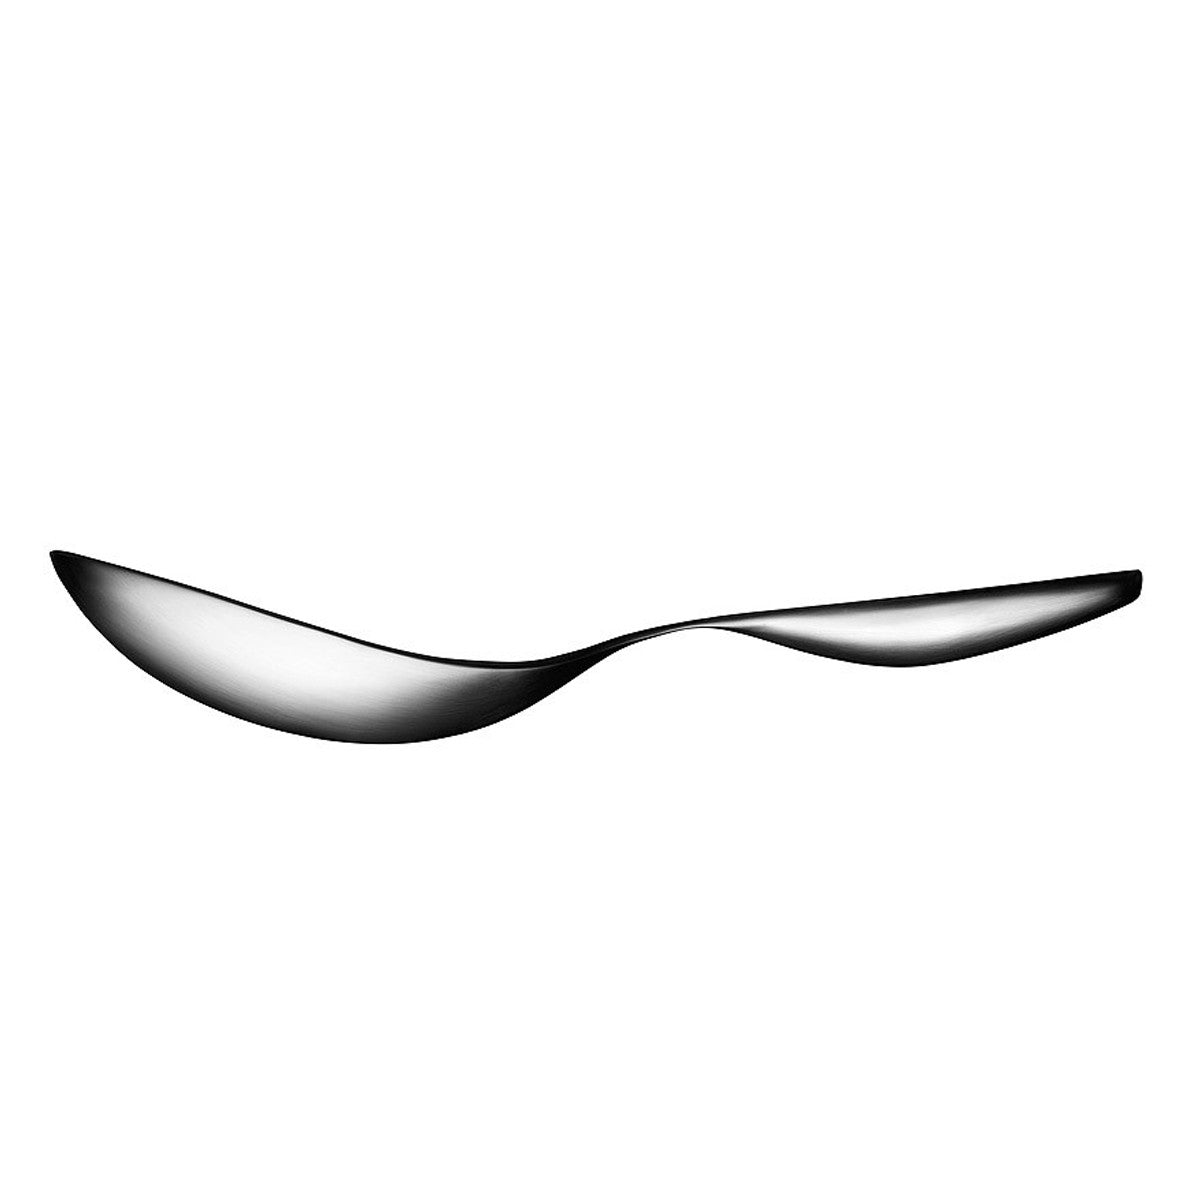 Cittero Serving Spoon Large